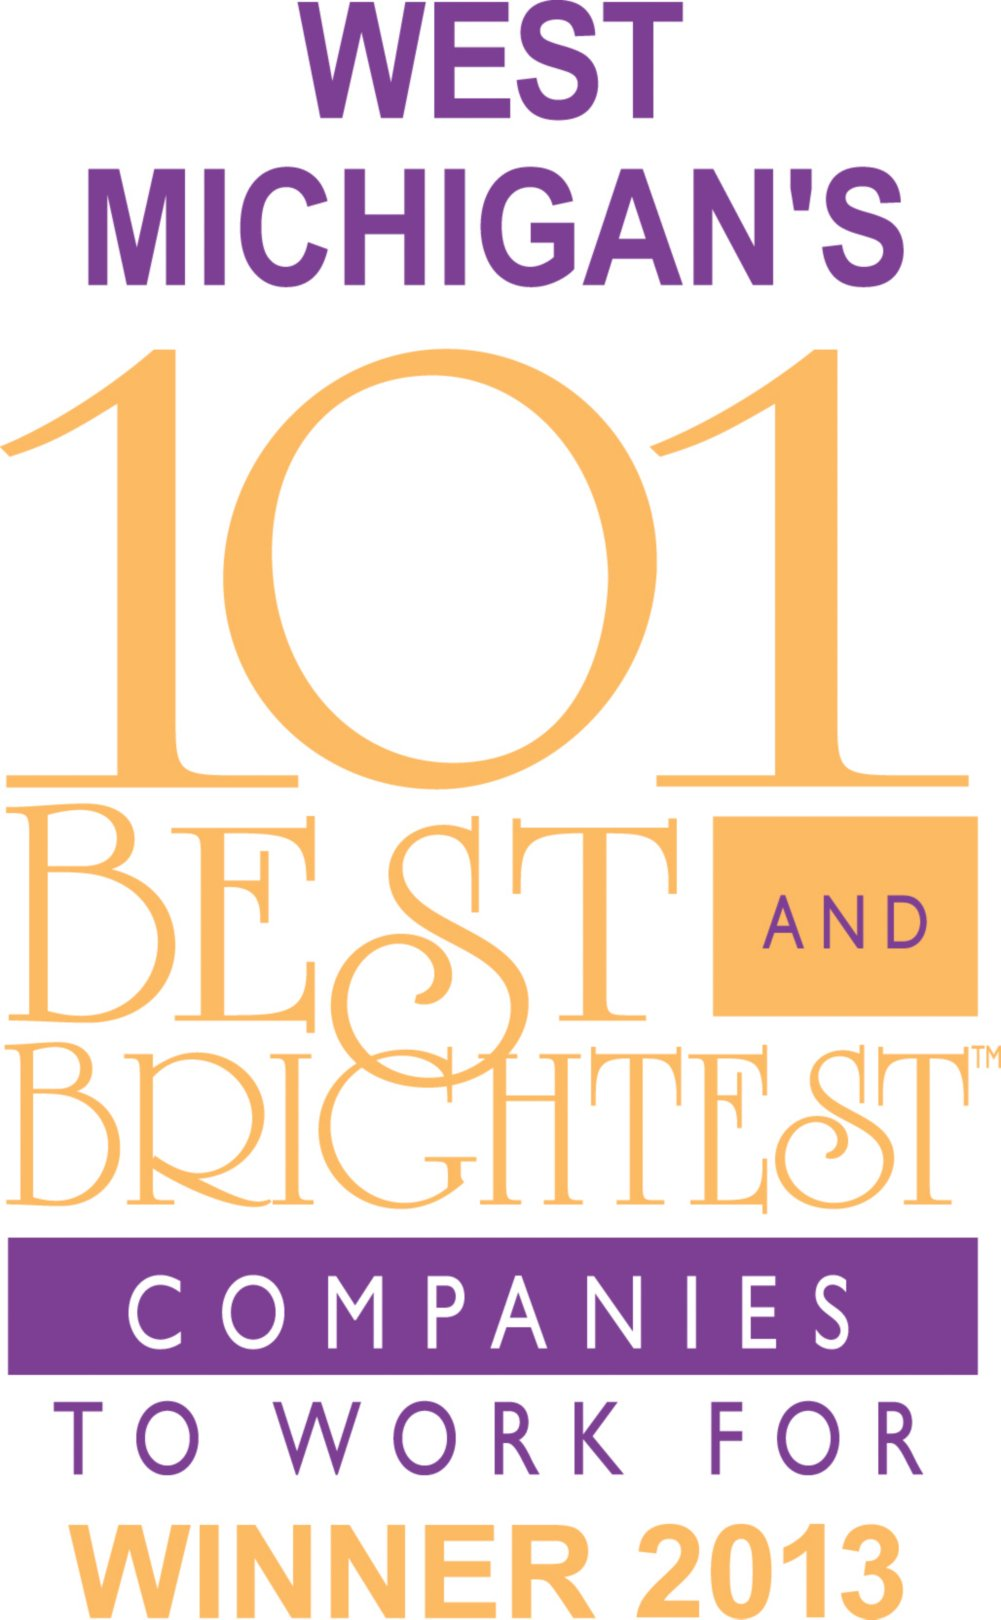 Baudville is one of West Michigan's 101 Best and Brightest